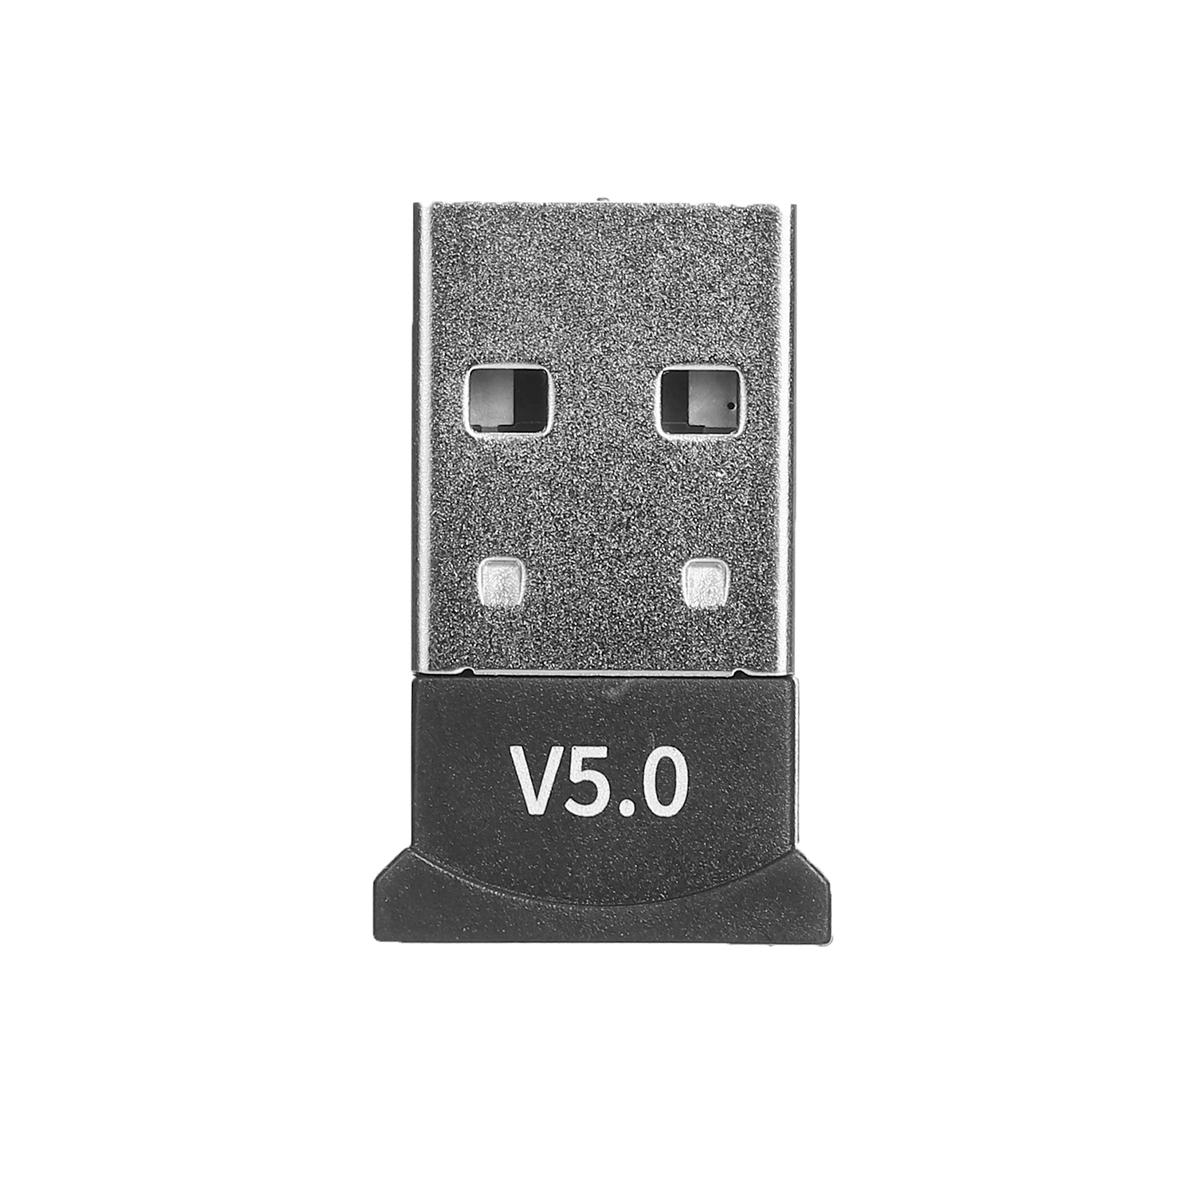 bluetooth 5.0 Adattatore USB per Windows 7/8/10 per Vista XP per Mac OS X Tastiera per PC Mouse Gamepad Altoparlanti